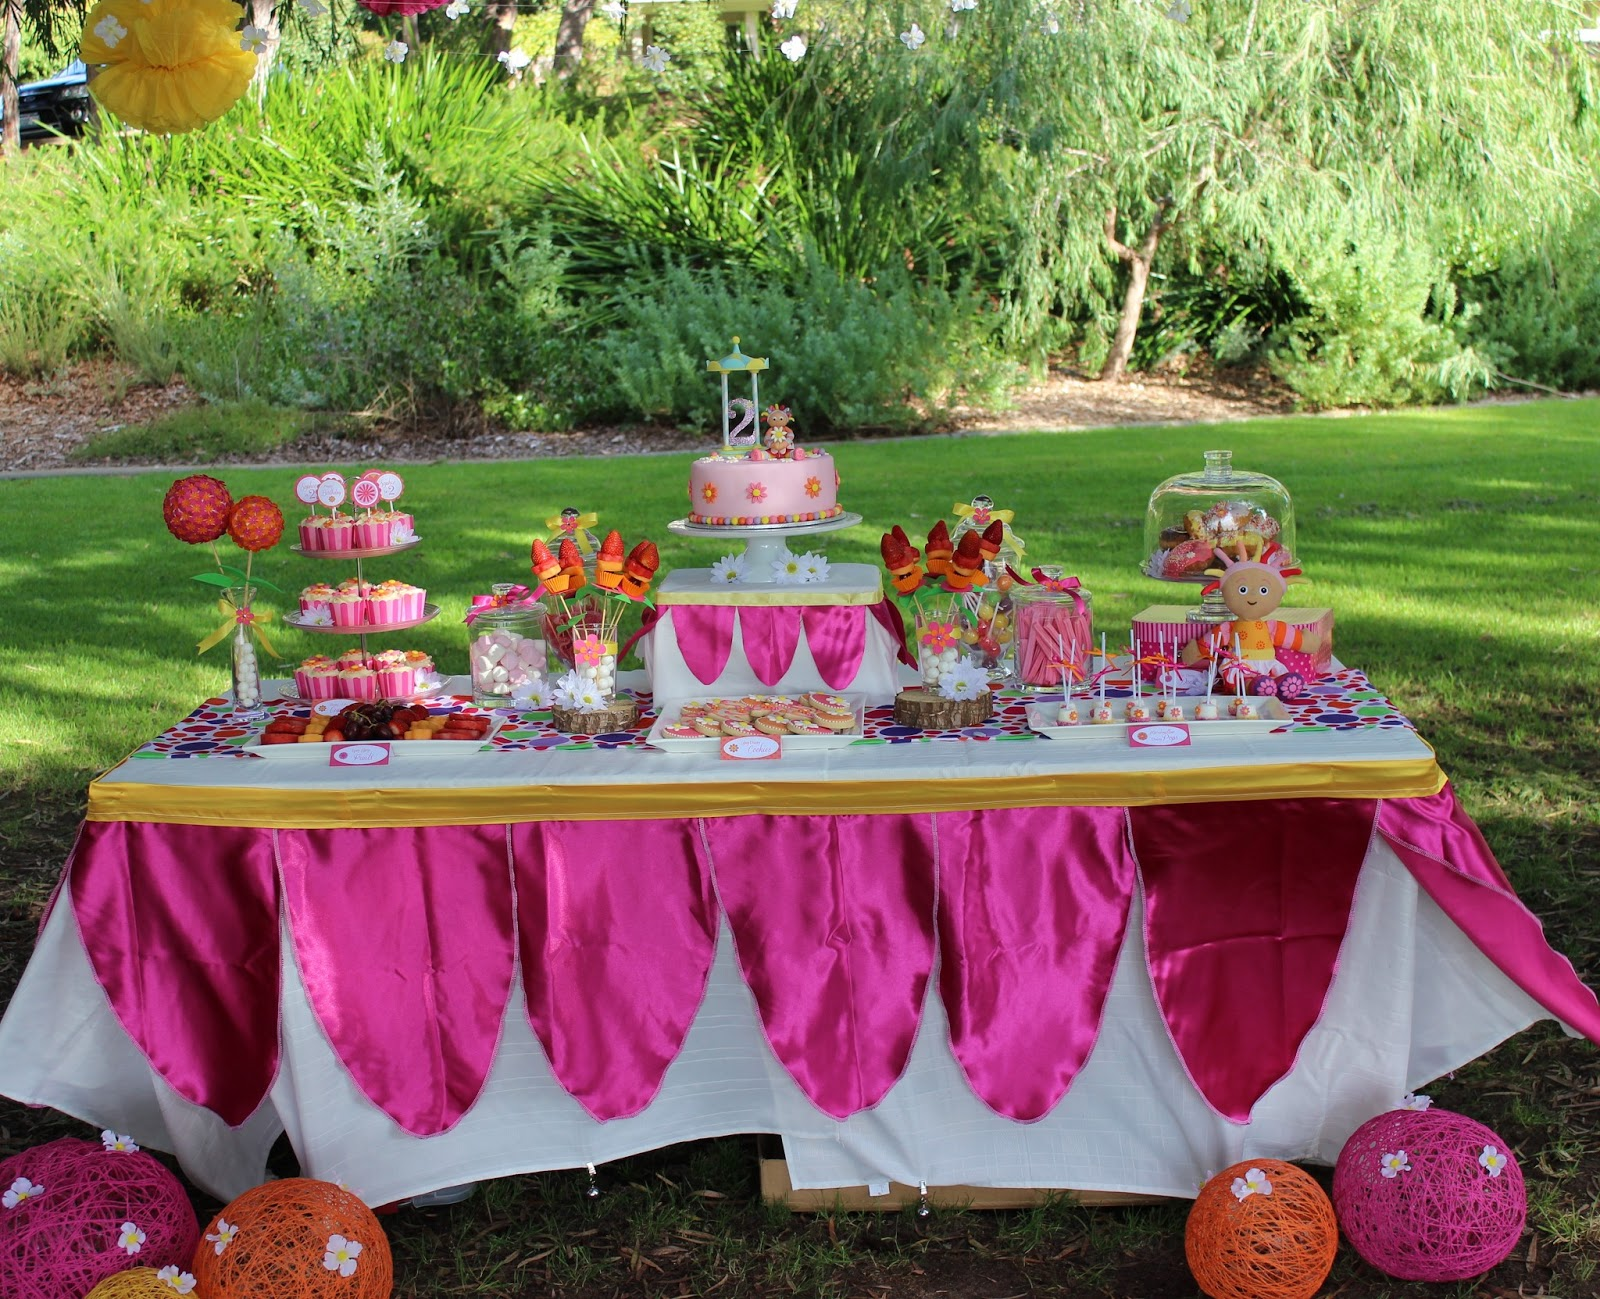 In The Night Garden Party Ideas Piece of cake upsy daisy party real party feature upsy daisy party real party feature workwithnaturefo